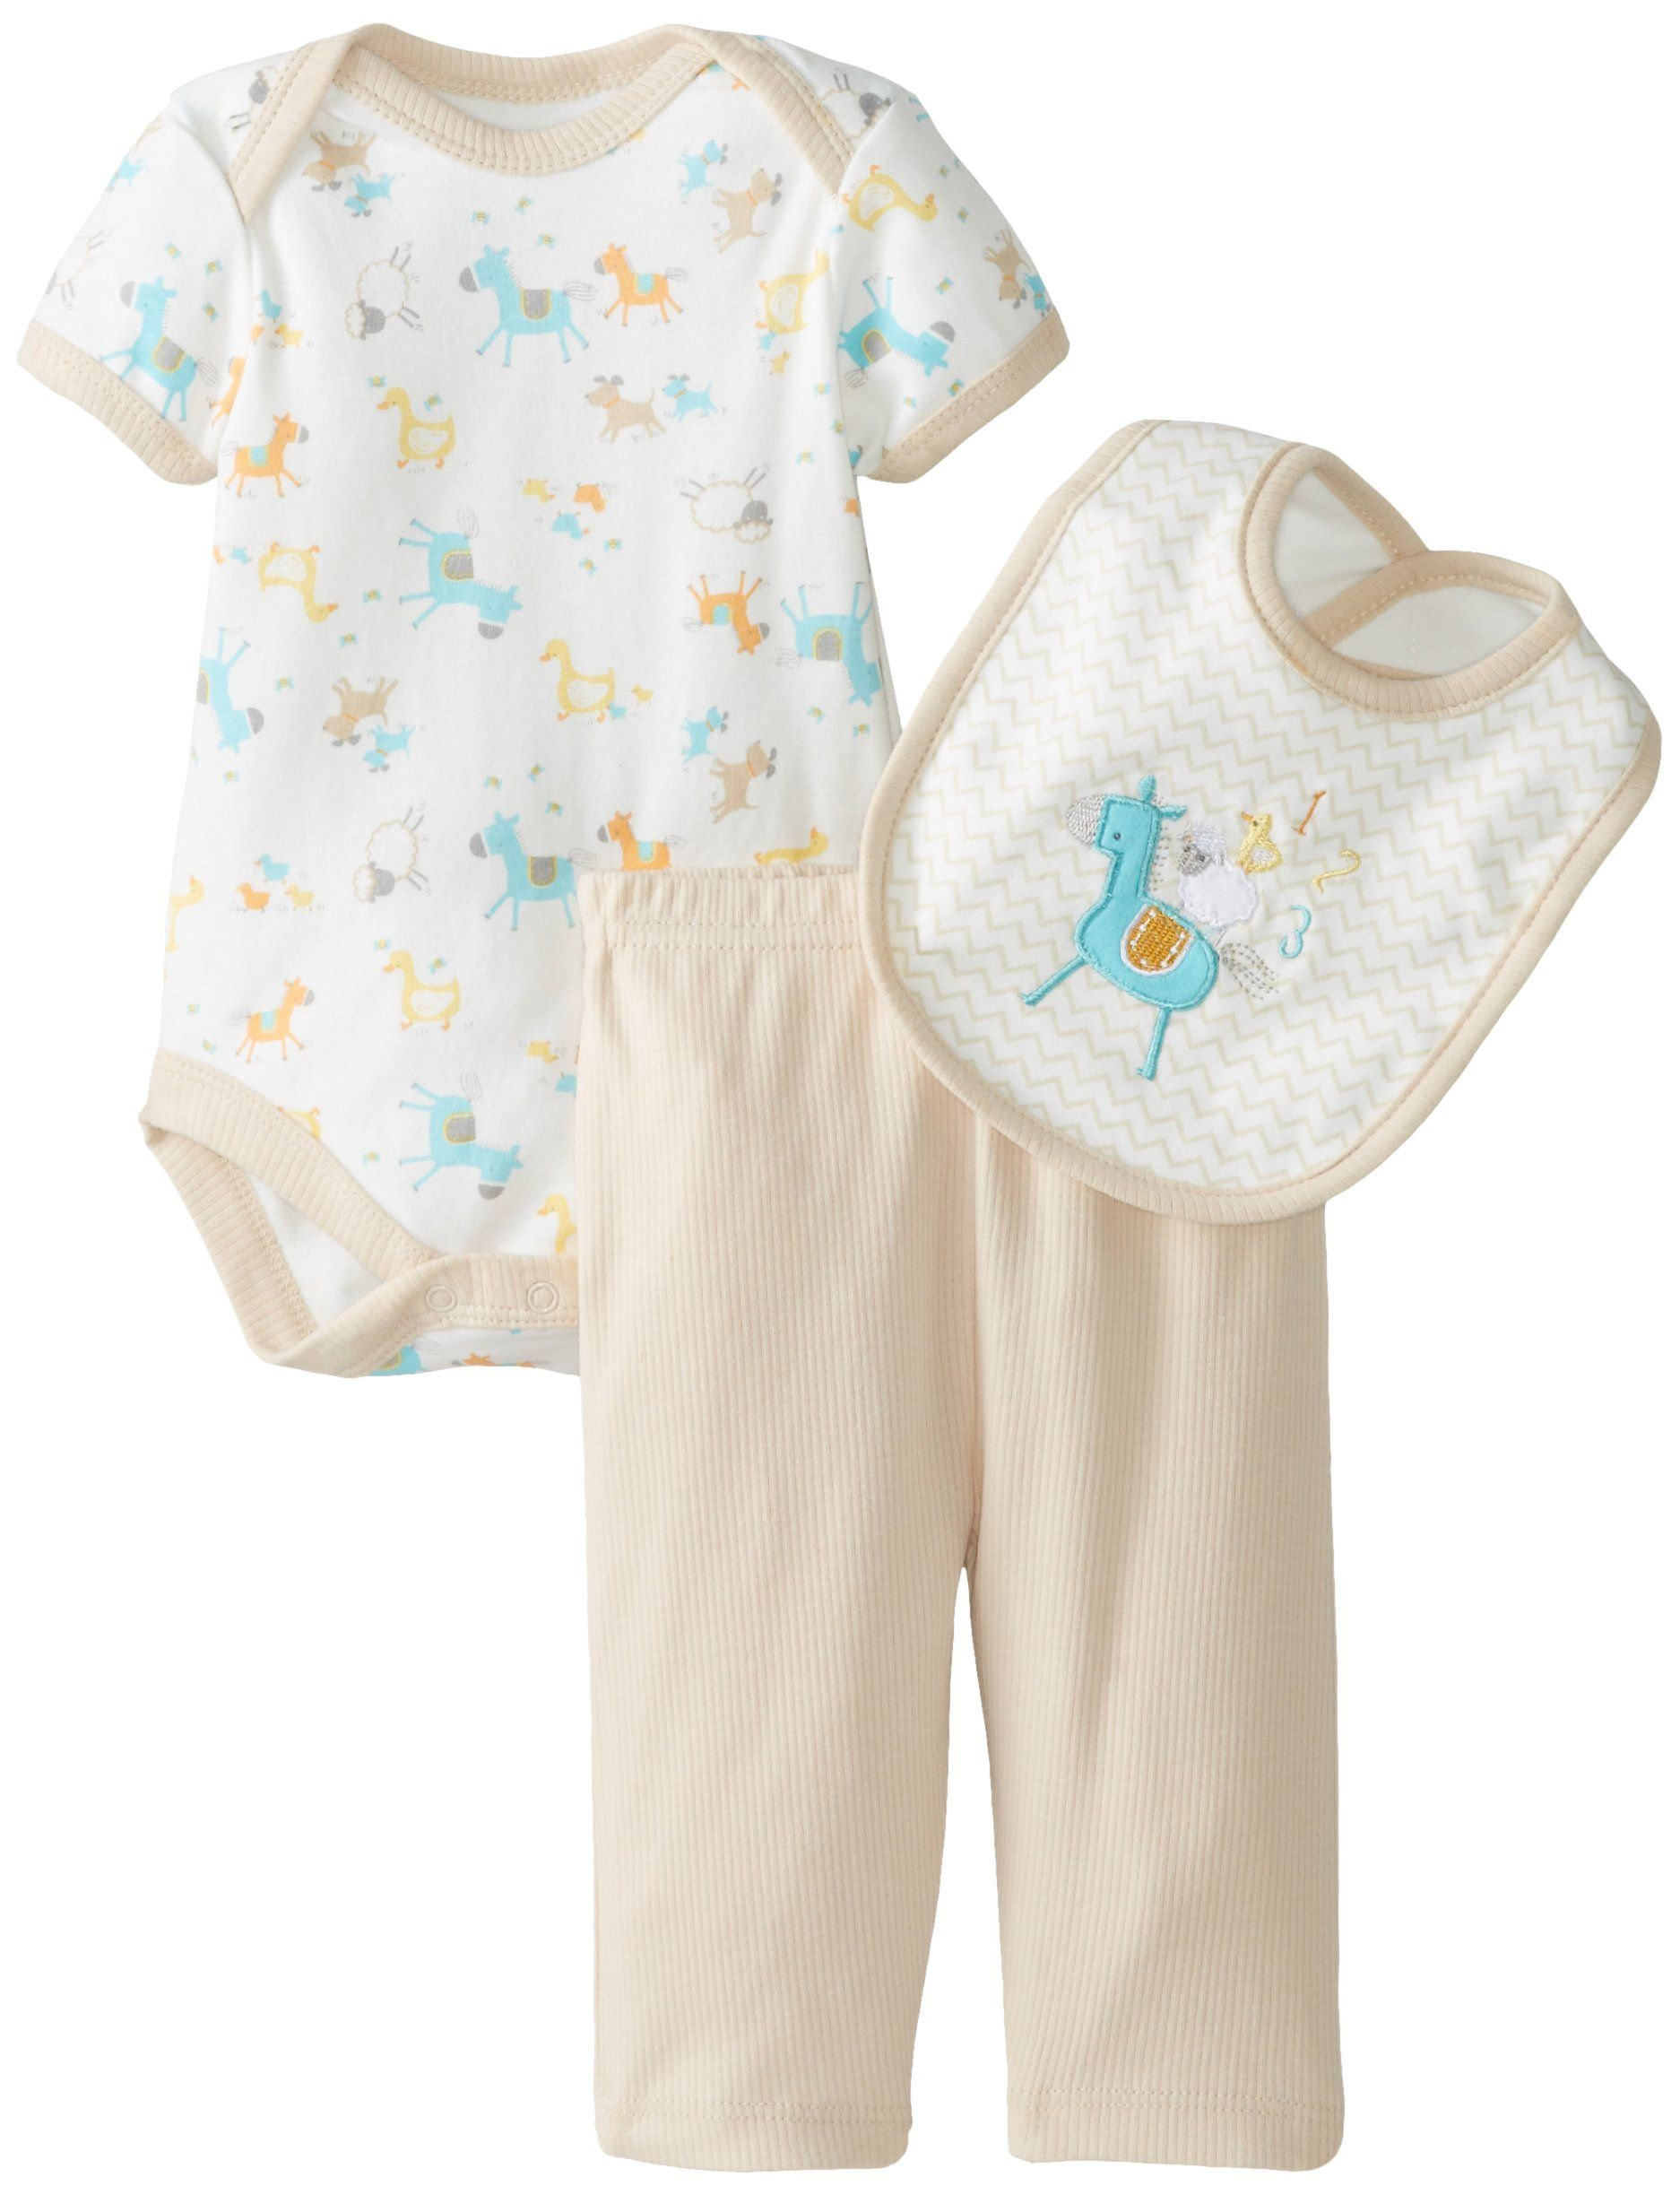 Rene Rofe Baby Uni Baby Newborn The Farm 3 Piece Pant Set with